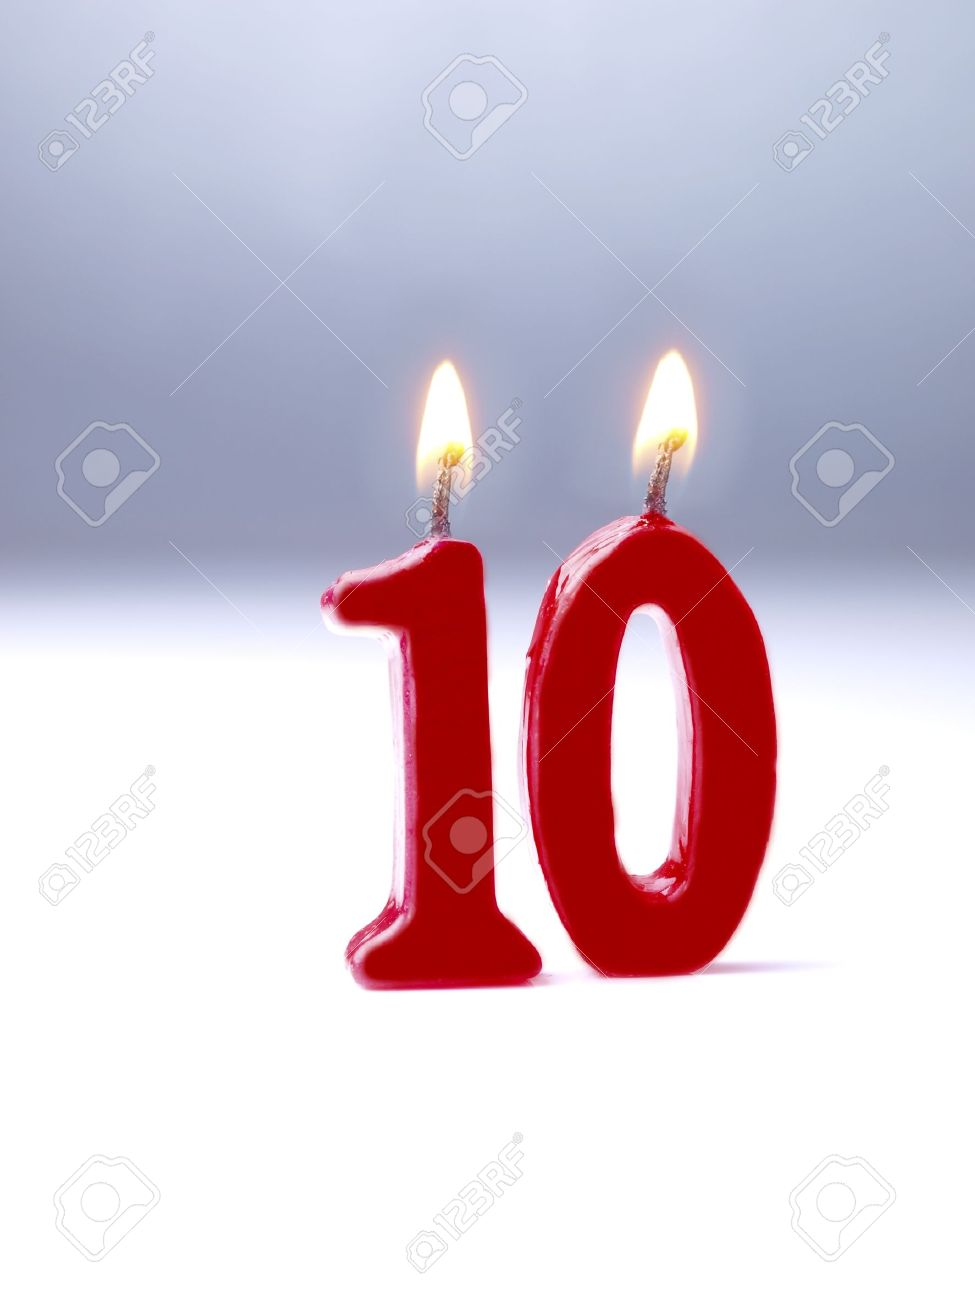 Birthday candles showing No. 10 - 15643799